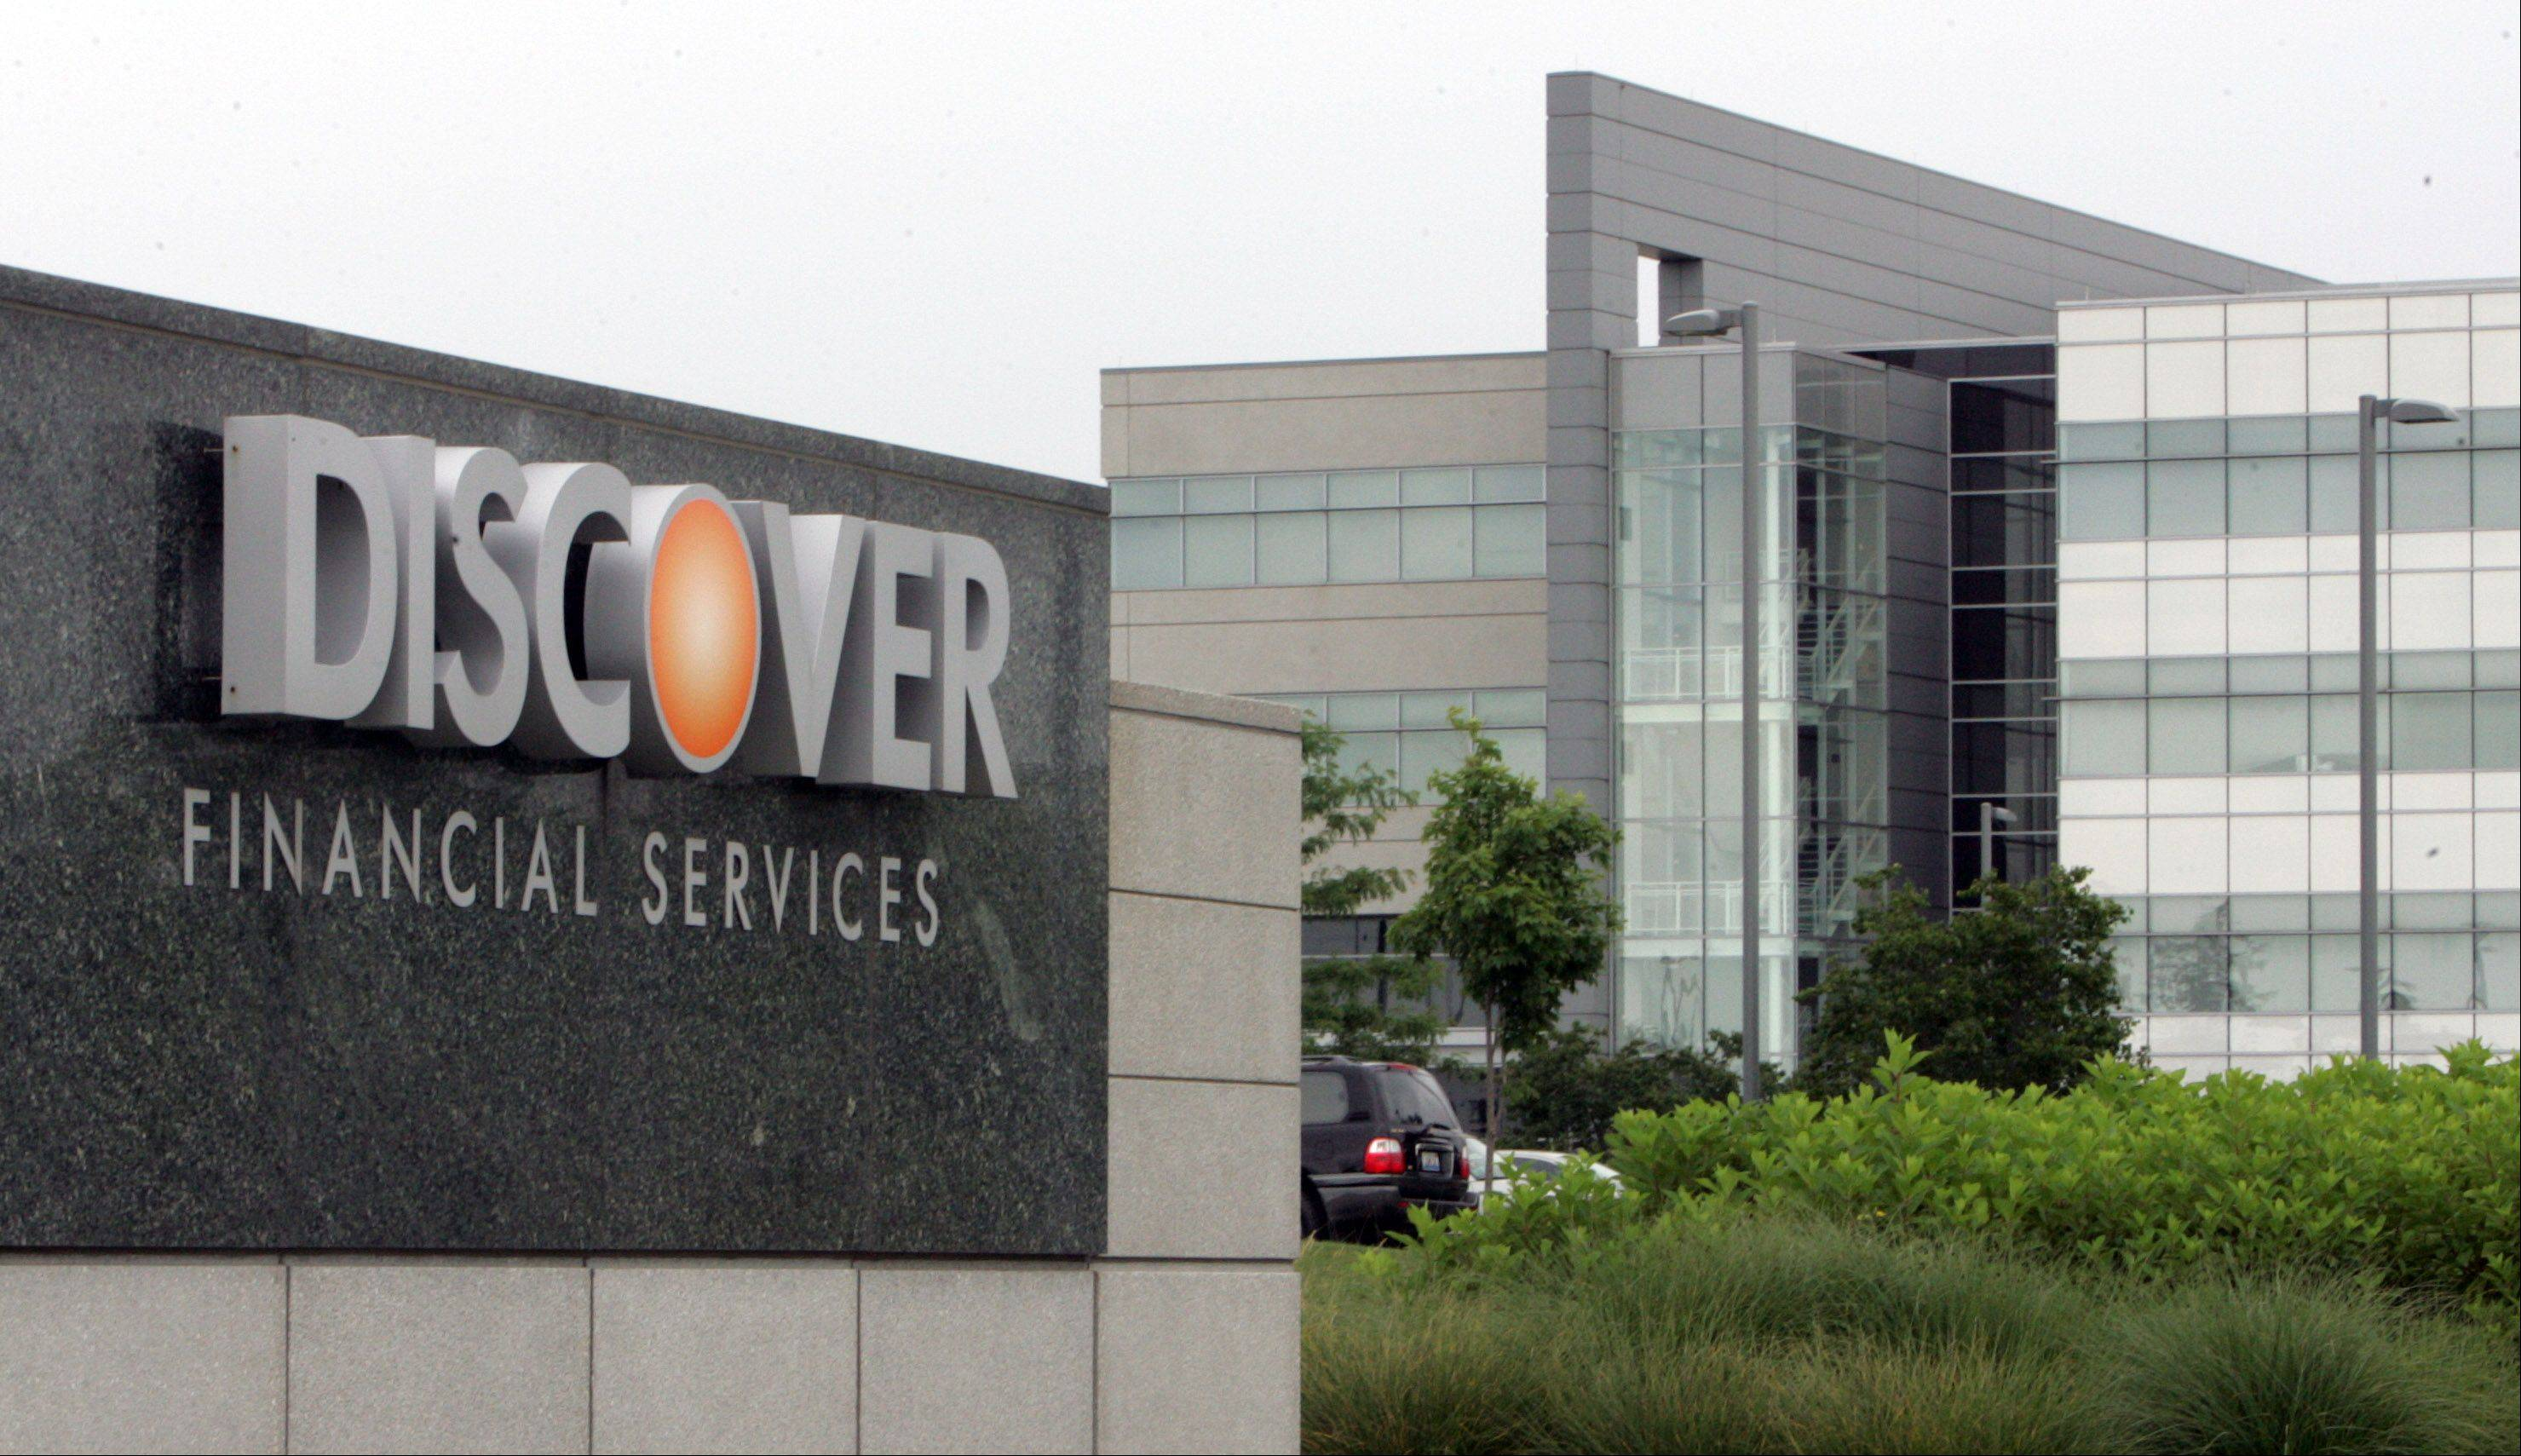 Discover Financial Services Headquarters in Riverwoods says its second-quarter net income fell 10 percent as the company freed up less money from reserves set aside to cover customers' unpaid bills.